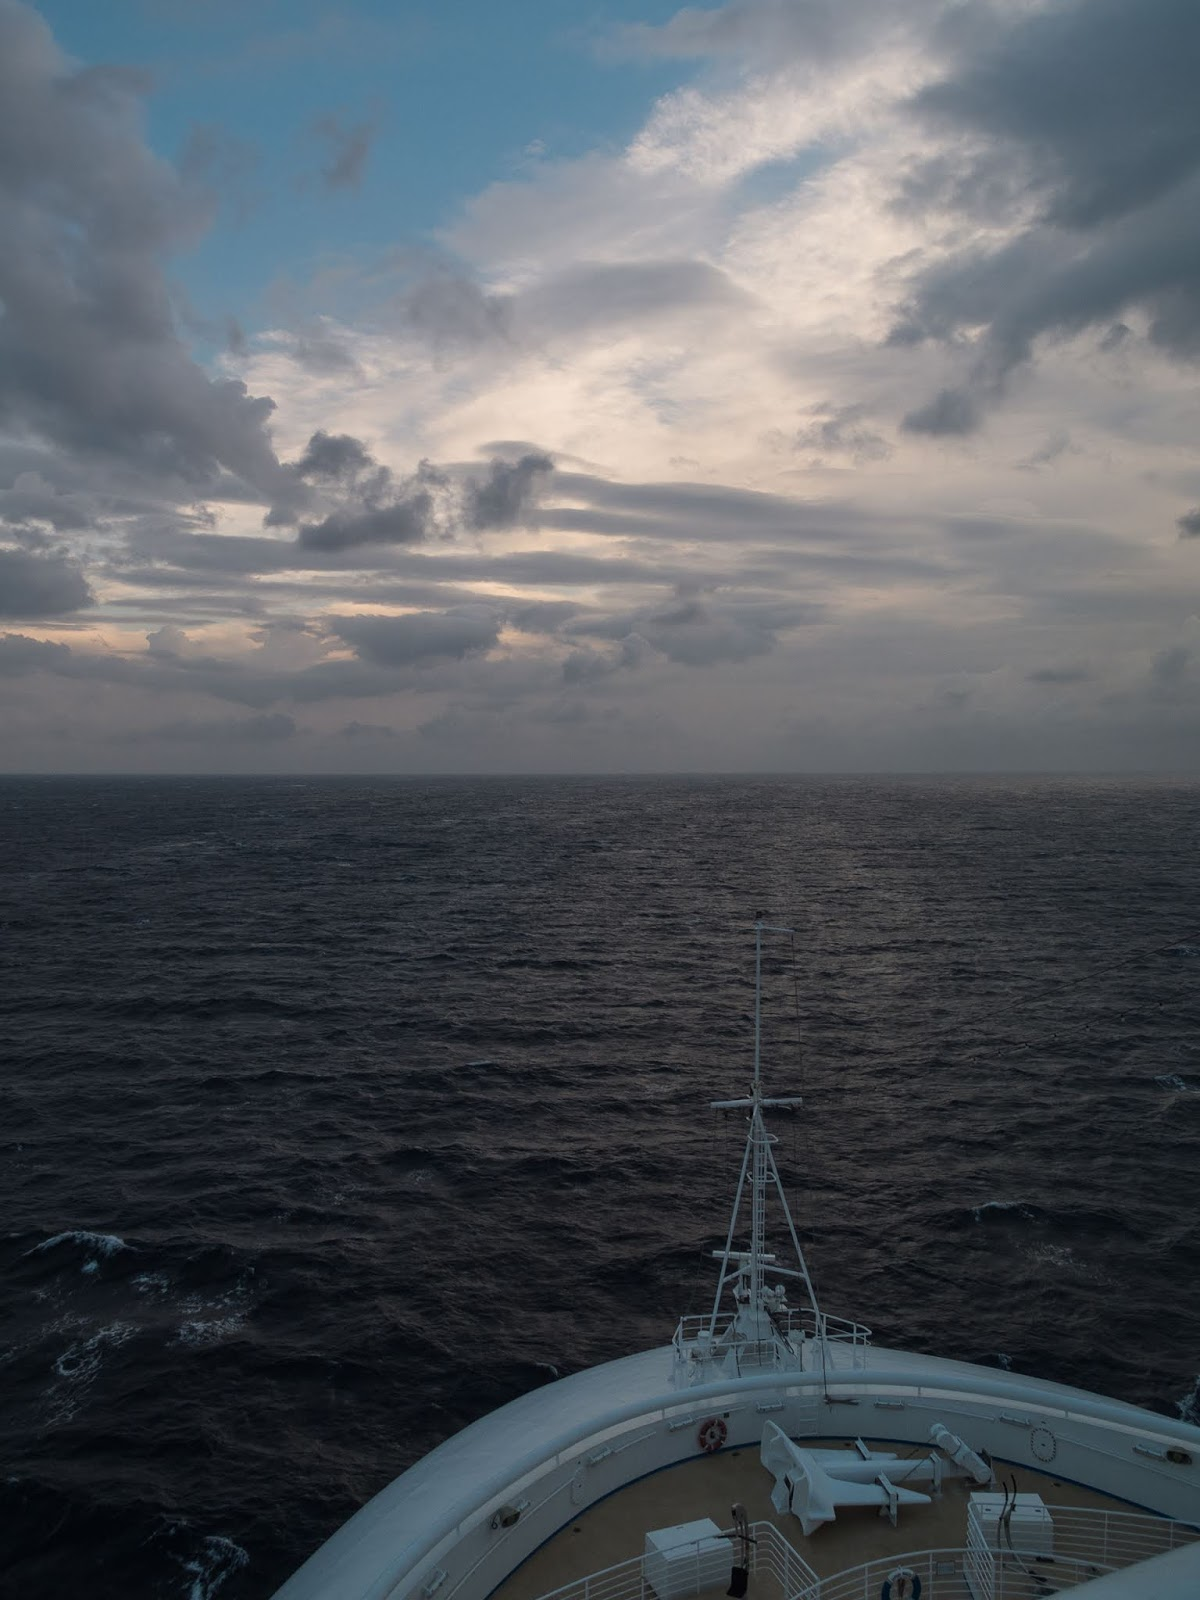 View of the water and sky while sailing on a cruise ship.